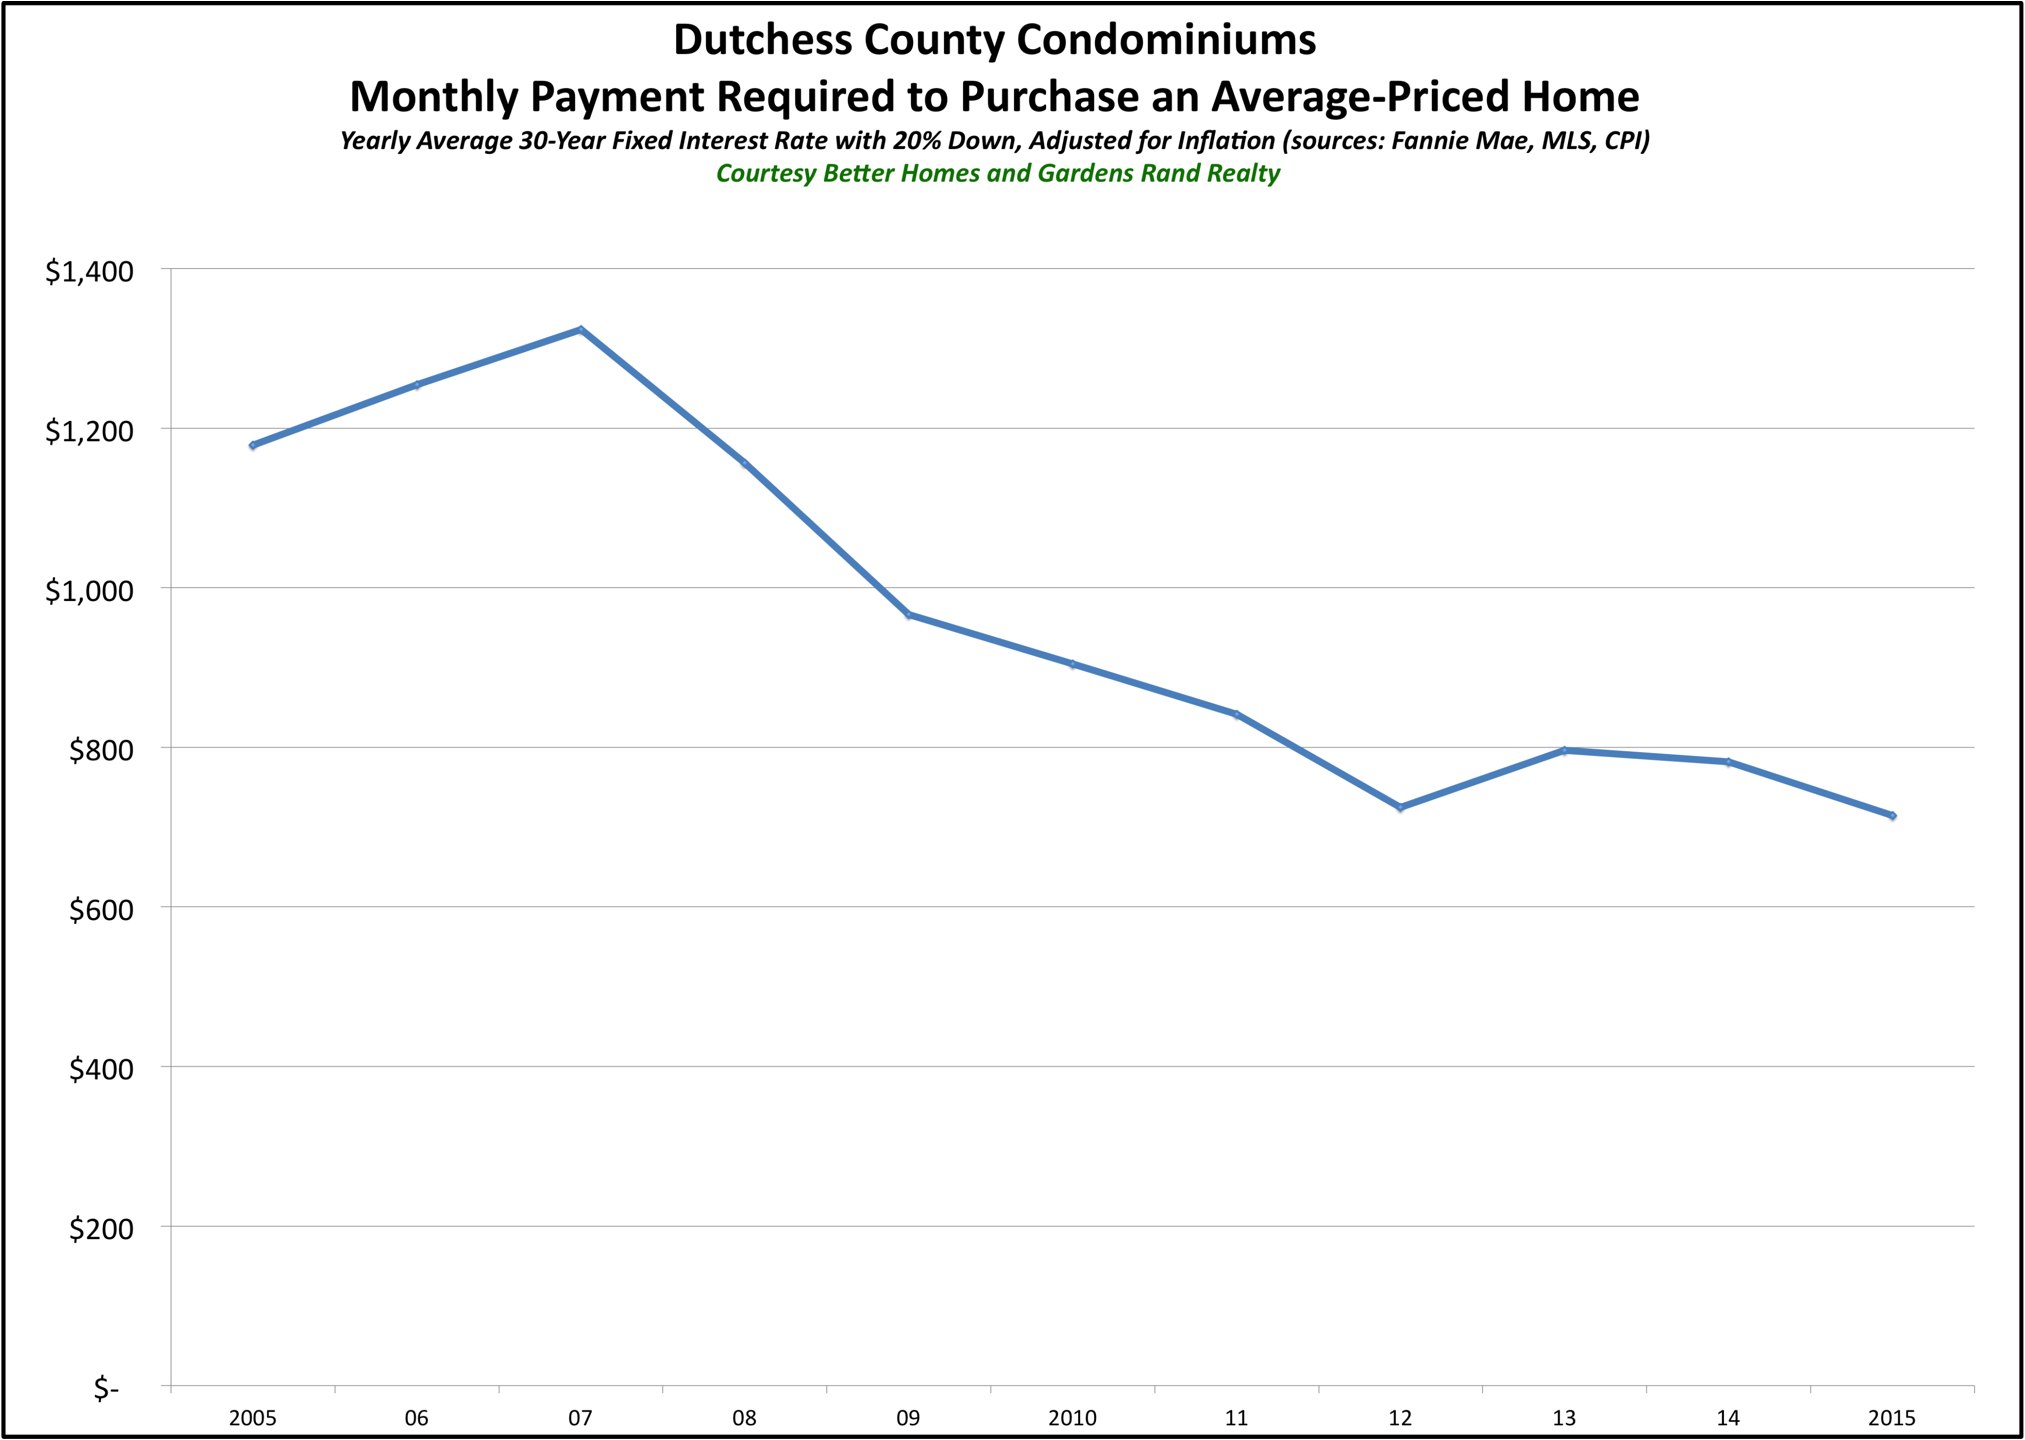 Dutchess Condos Affordability 2015